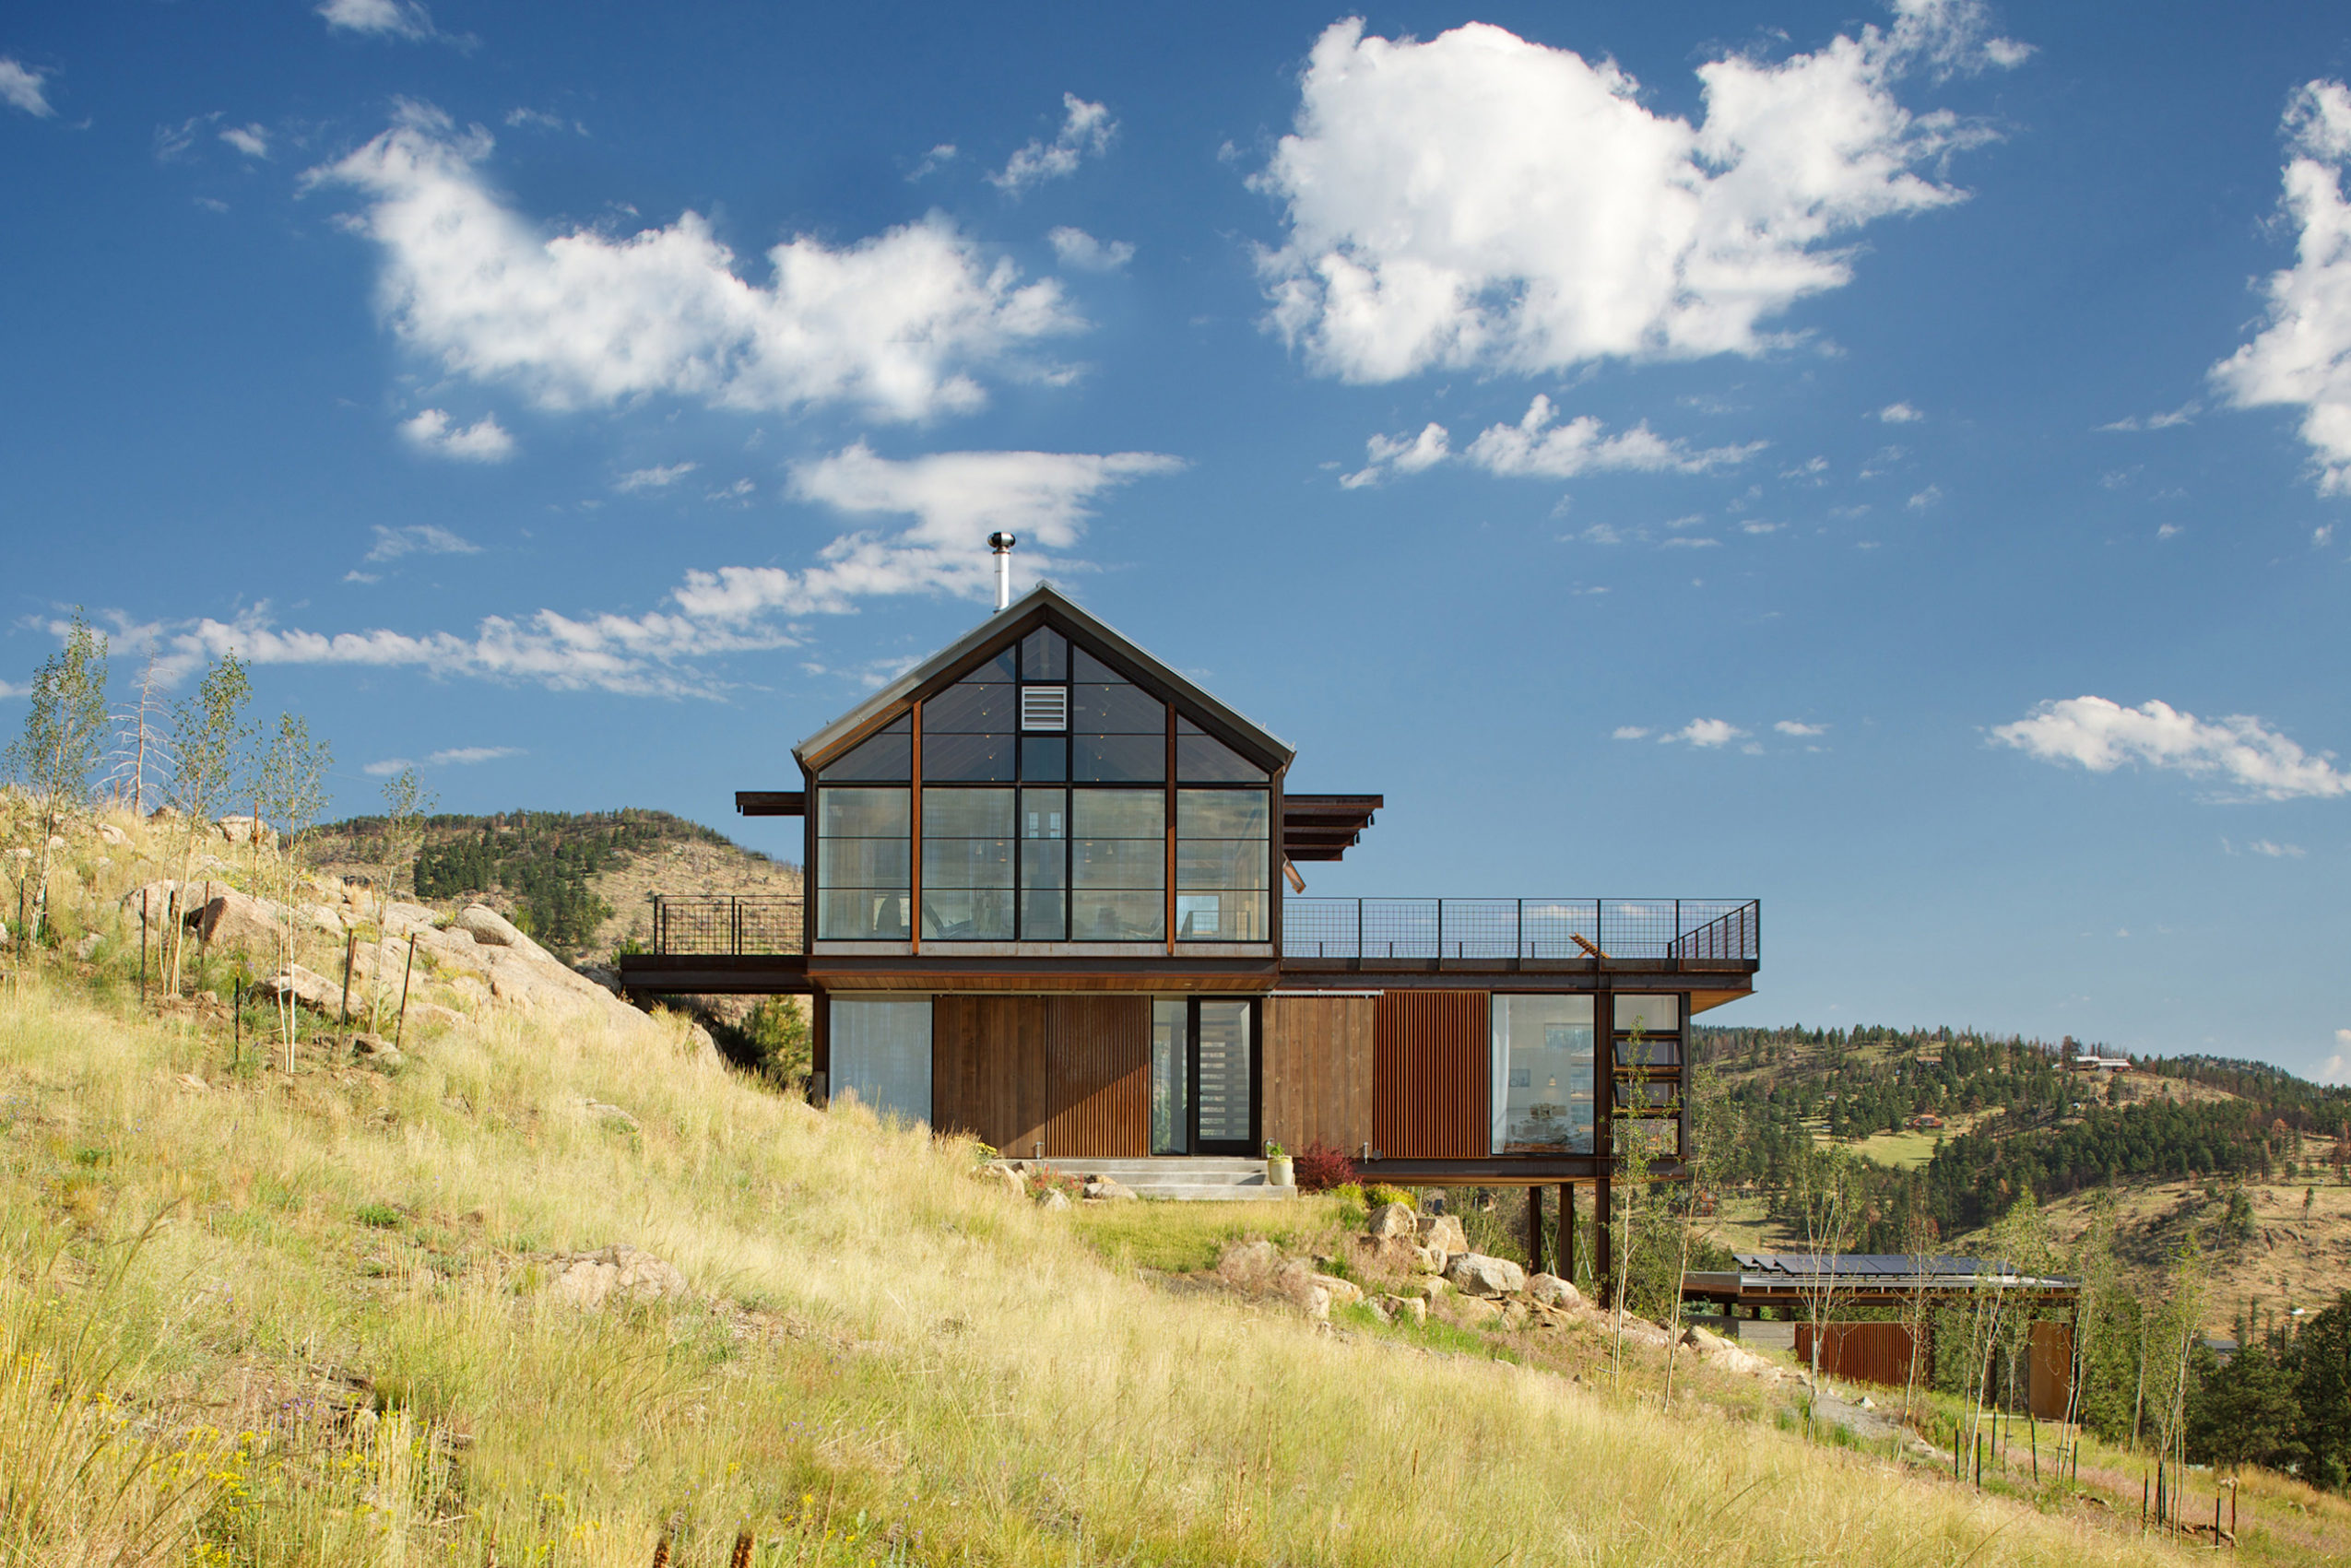 Sunshine Canyon House by Renée del Gaudio Architecture.